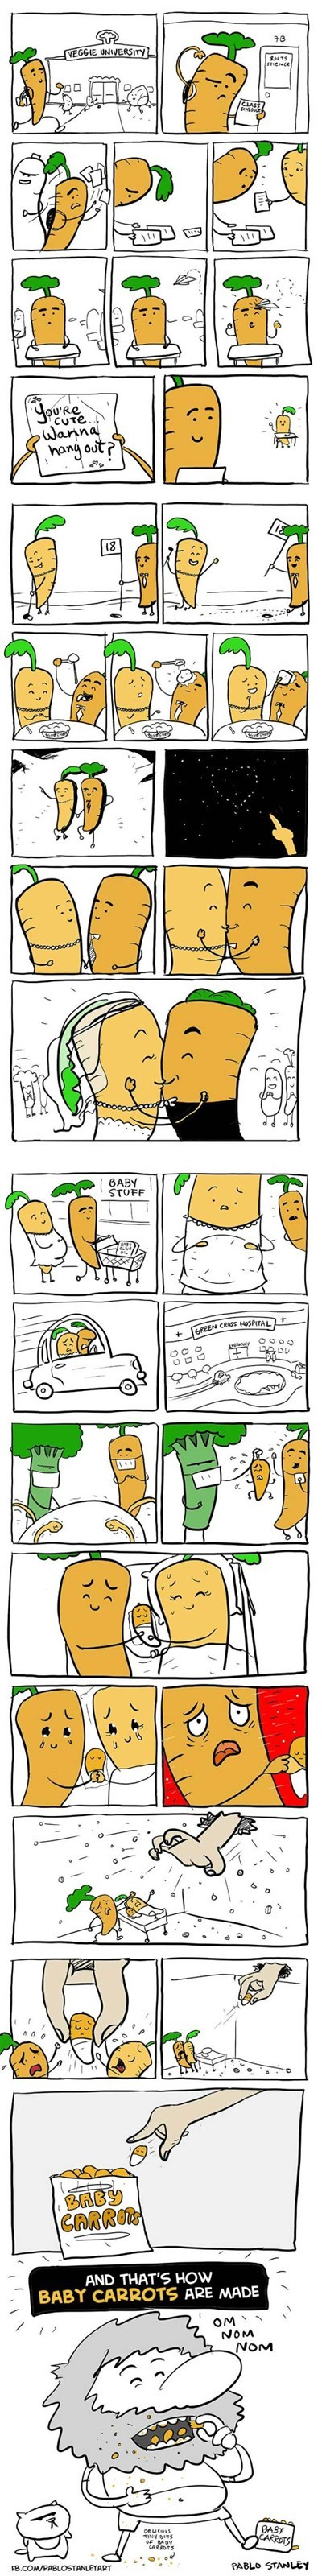 childbirth,comics,puns,carrots,g rated,Parenting FAILS